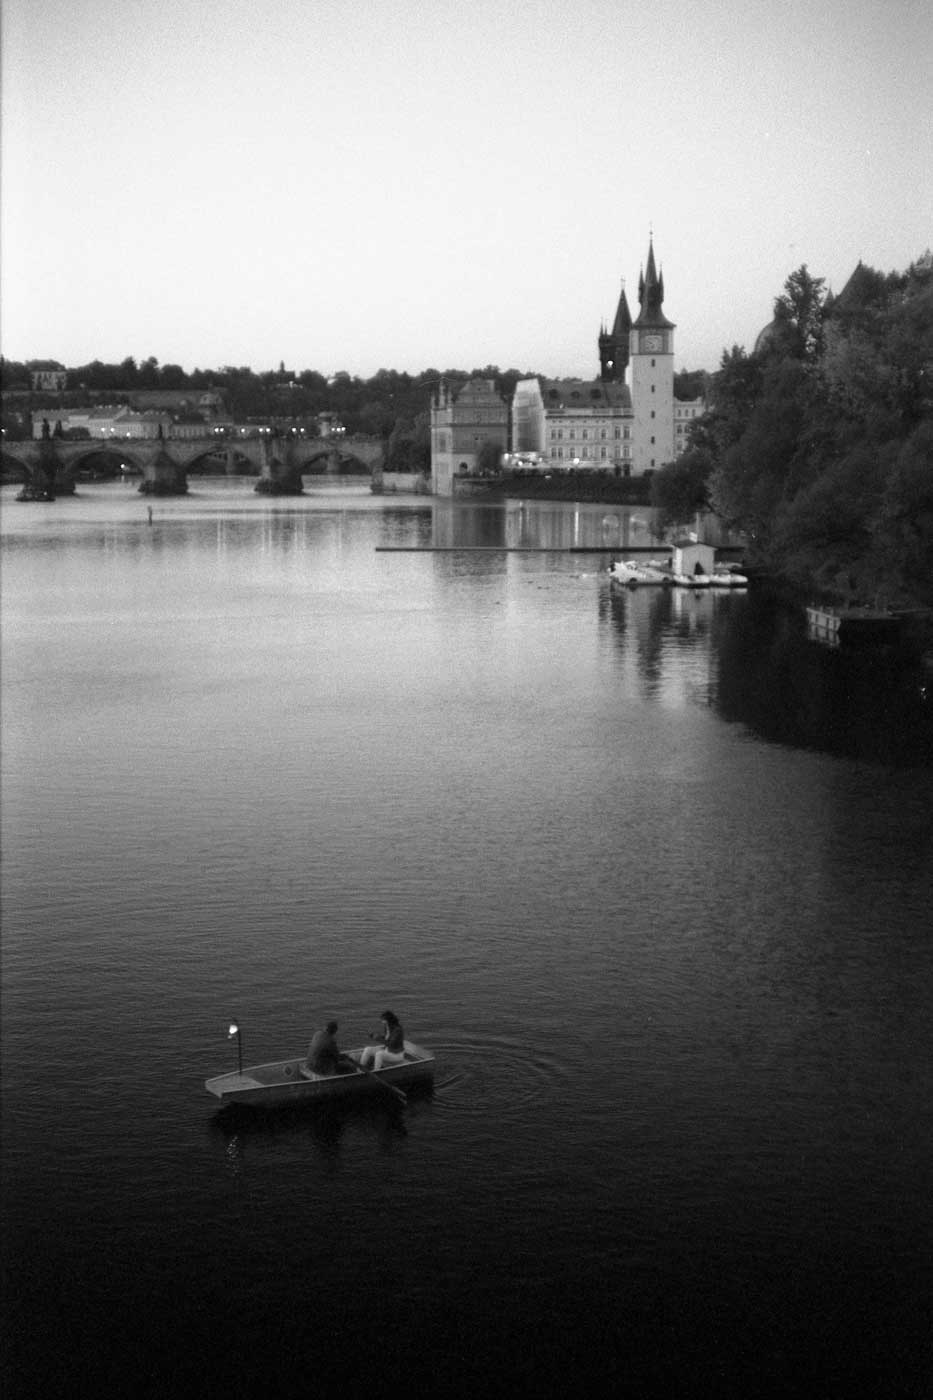 Leica-summicron-50mm-f2-50-f2.0-collapsible-v1-cron-lens-review-rollei-400s-prague-rowing-couple-on-lake-evening-czech-republic